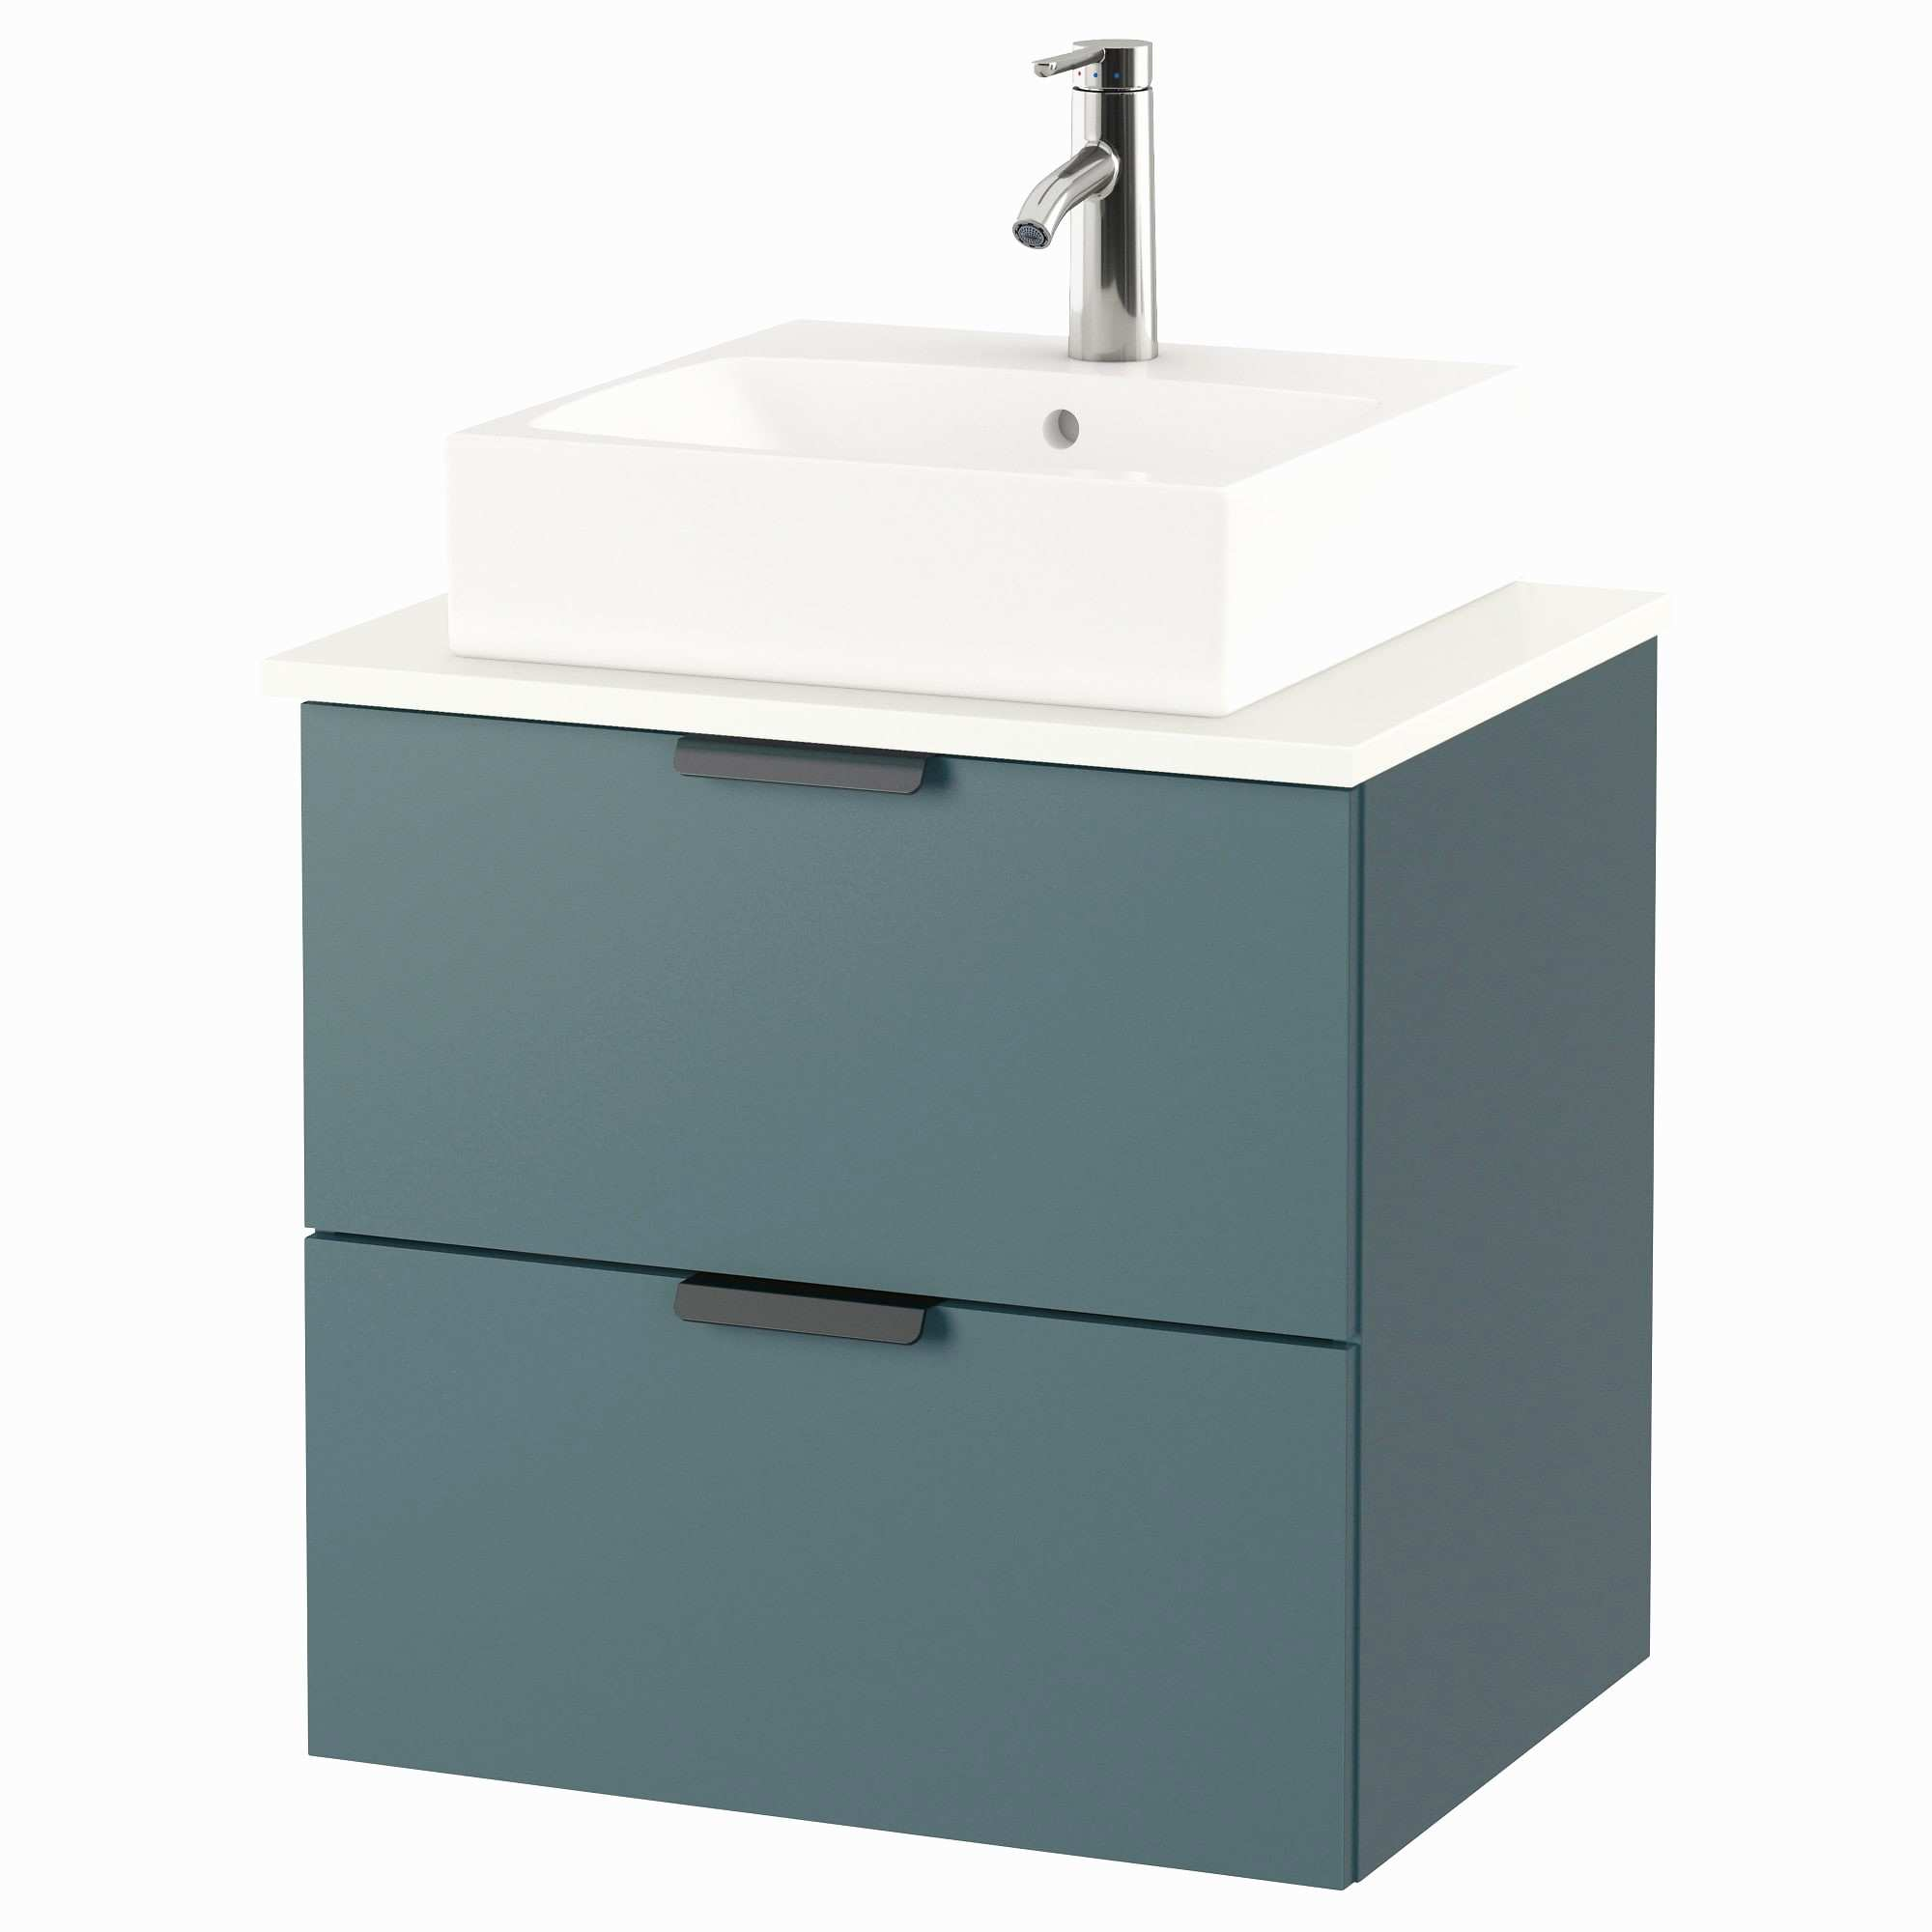 Luxury Bathroom Vanity Sets Ikea All About Bathroom Inspiration